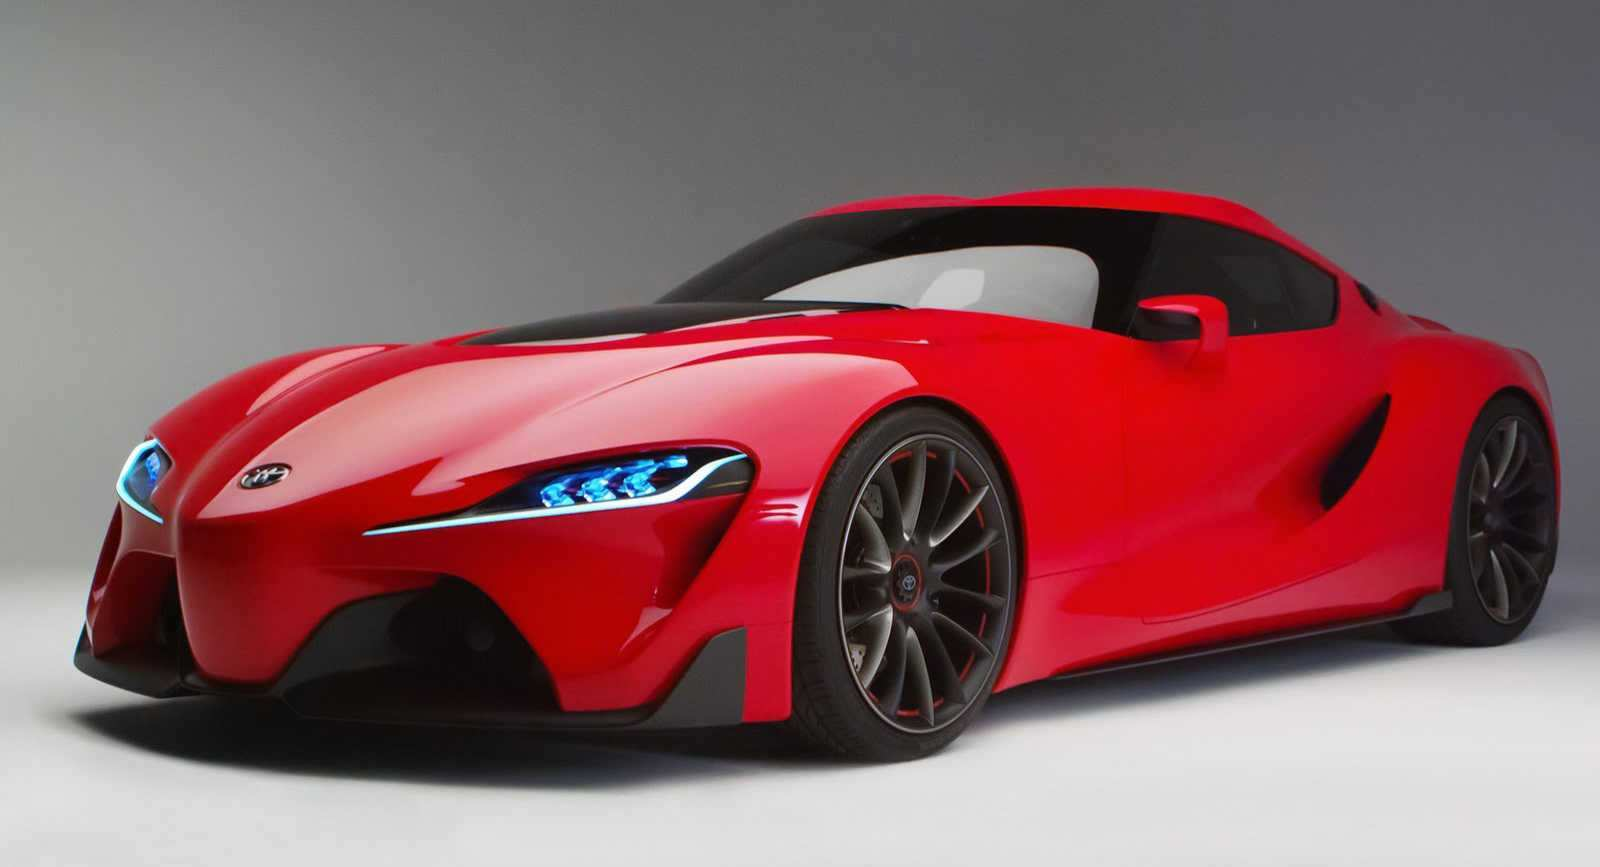 14 Concept of 2019 Toyota Ft 1 New Review for 2019 Toyota Ft 1